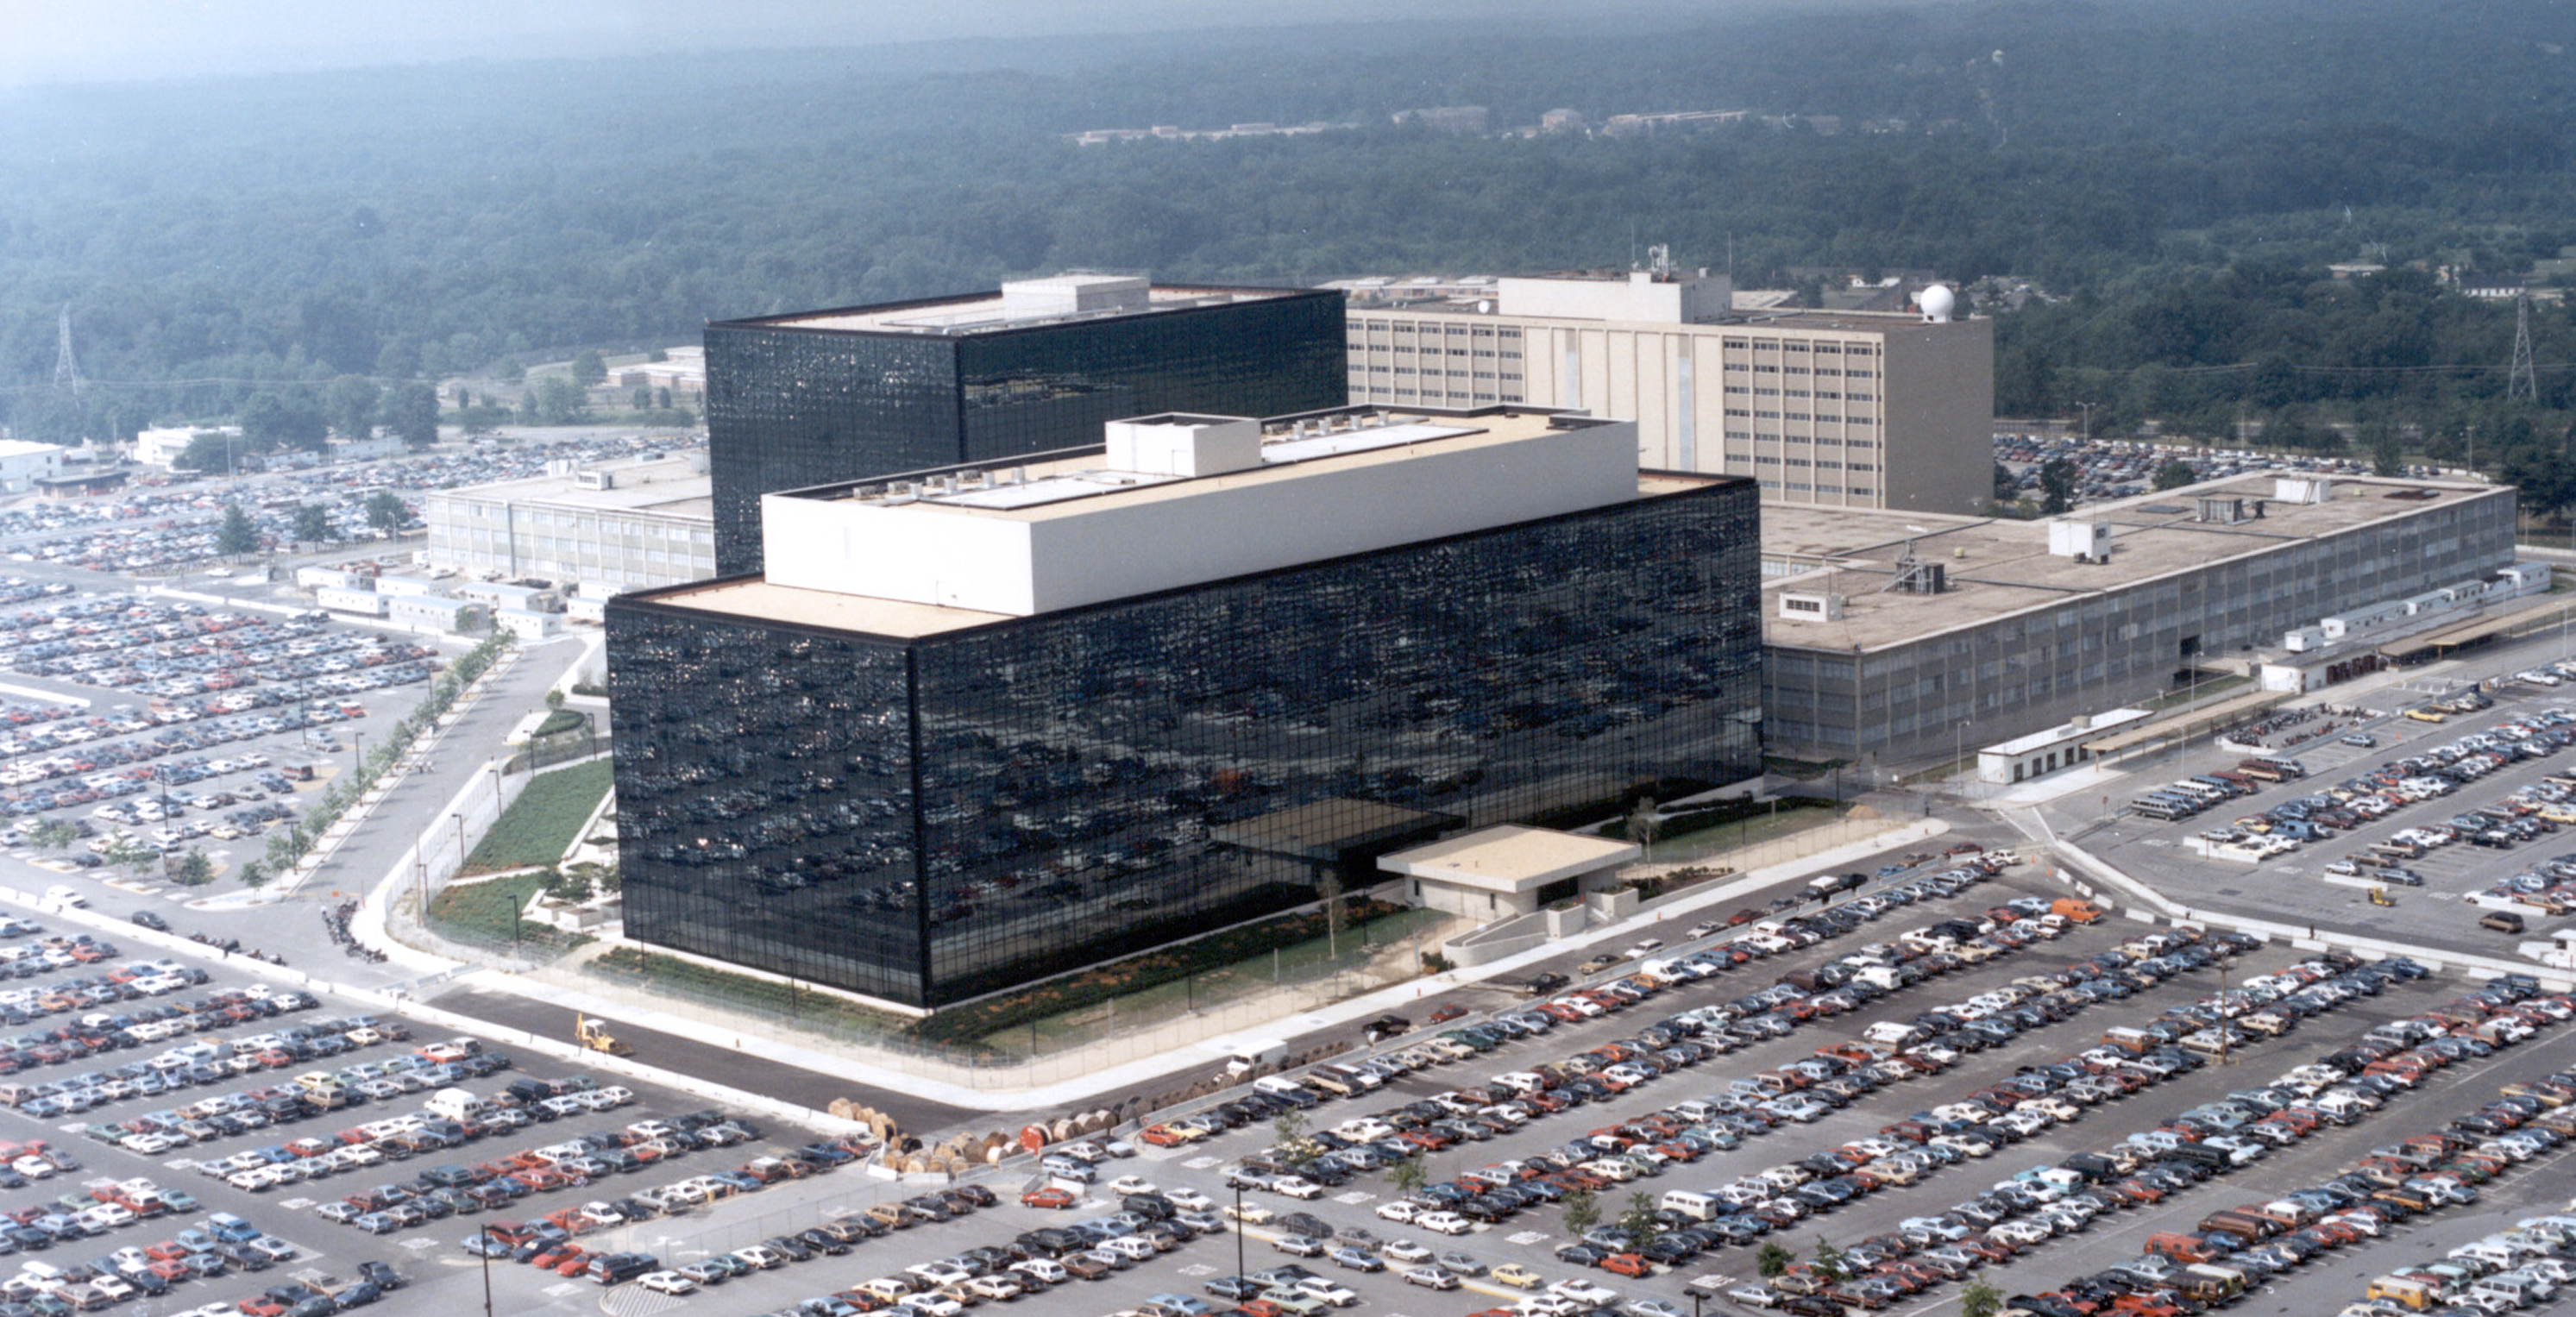 The National Security Agency's headquarters in Ft. Meade, Maryland, in an undated file photo.